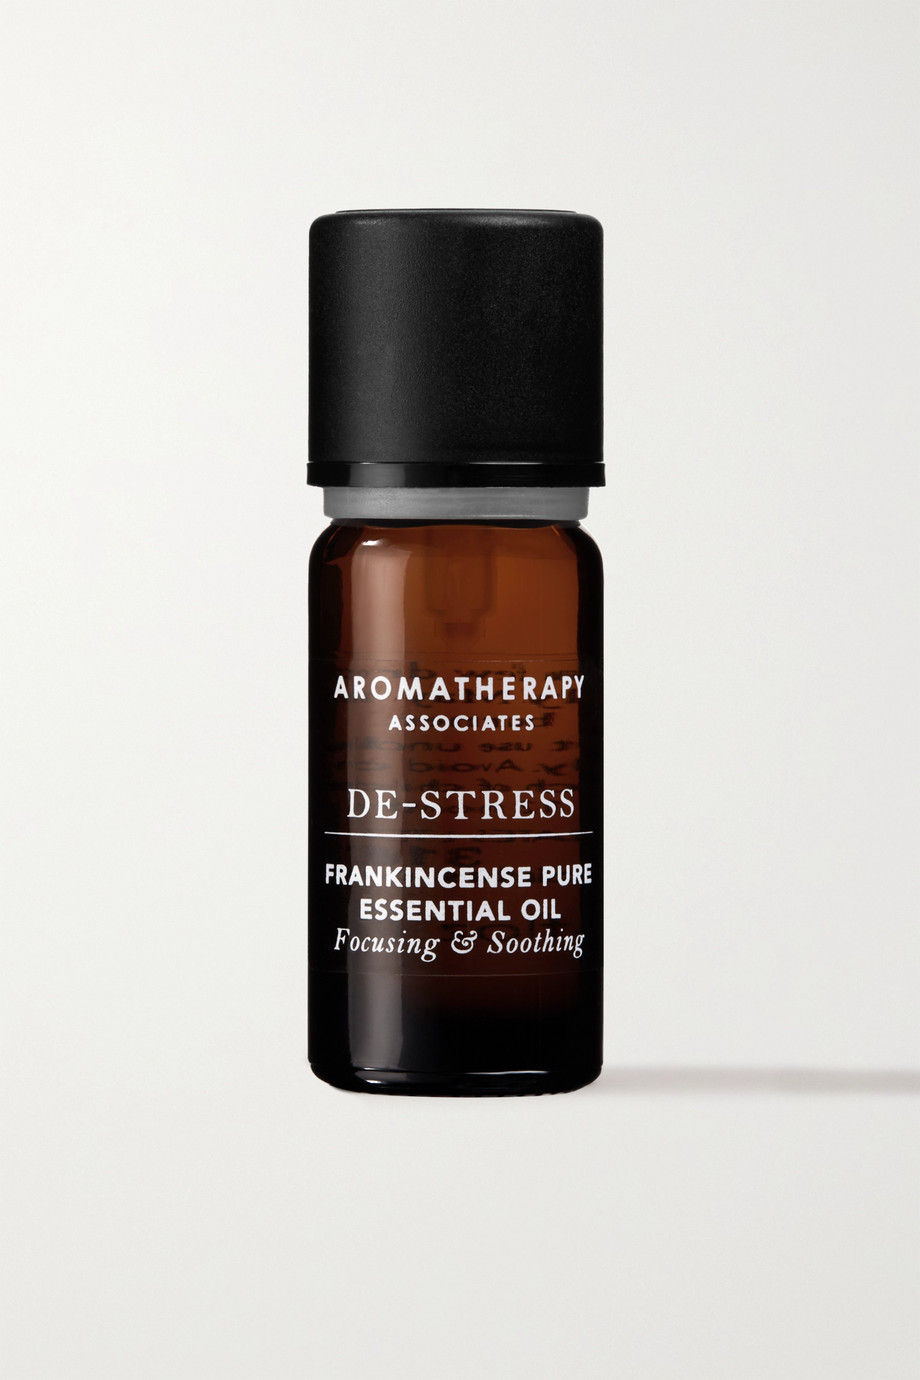 Aromatherapy Associates De-Stress Frankincense Pure Essential Oil, 10ml